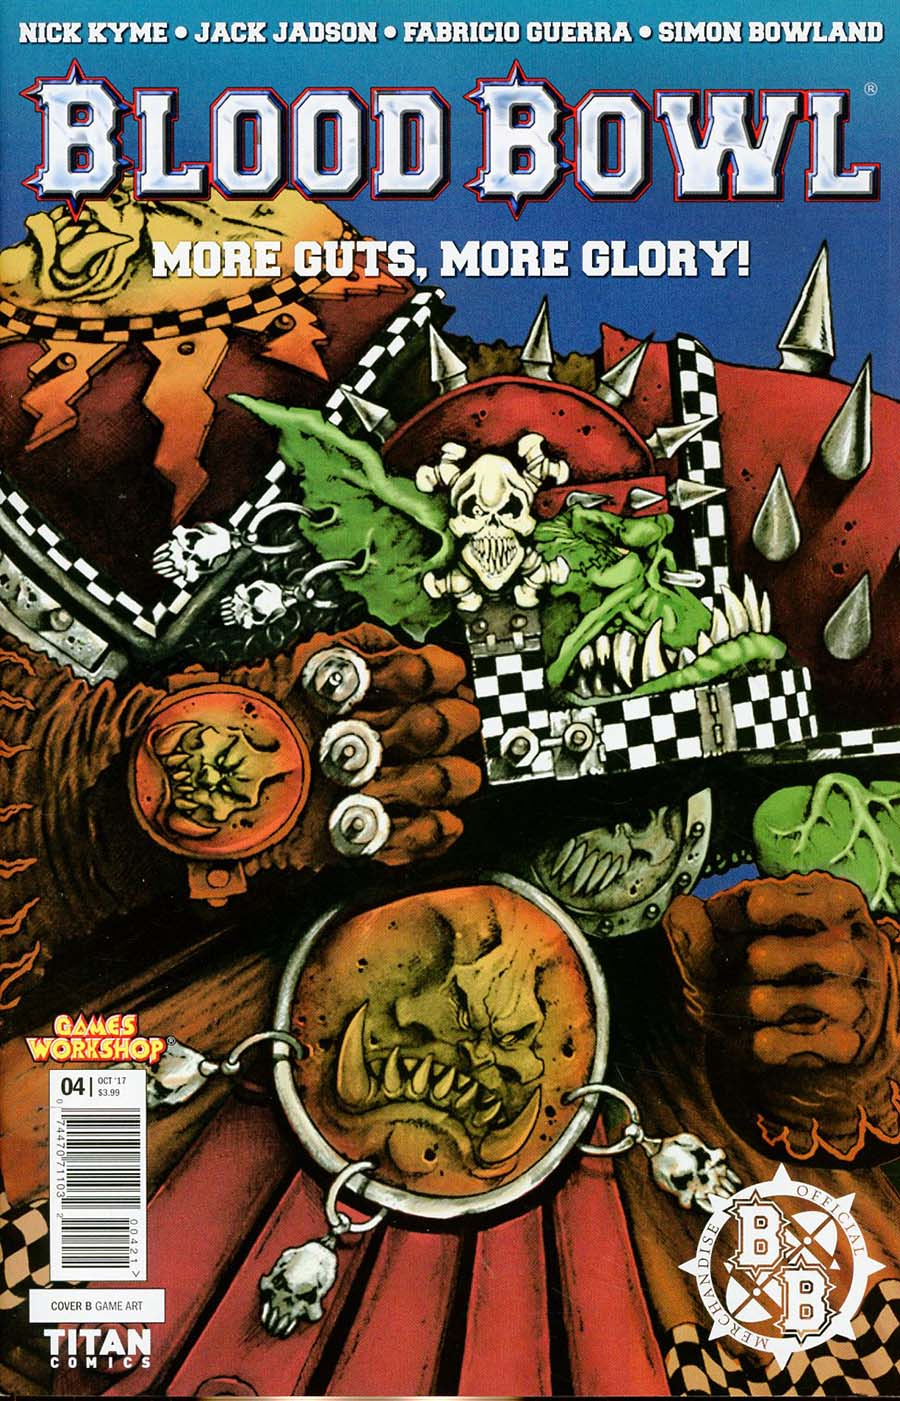 Blood Bowl More Guts More Glory #4 Cover B Variant Classic Game Art Cover